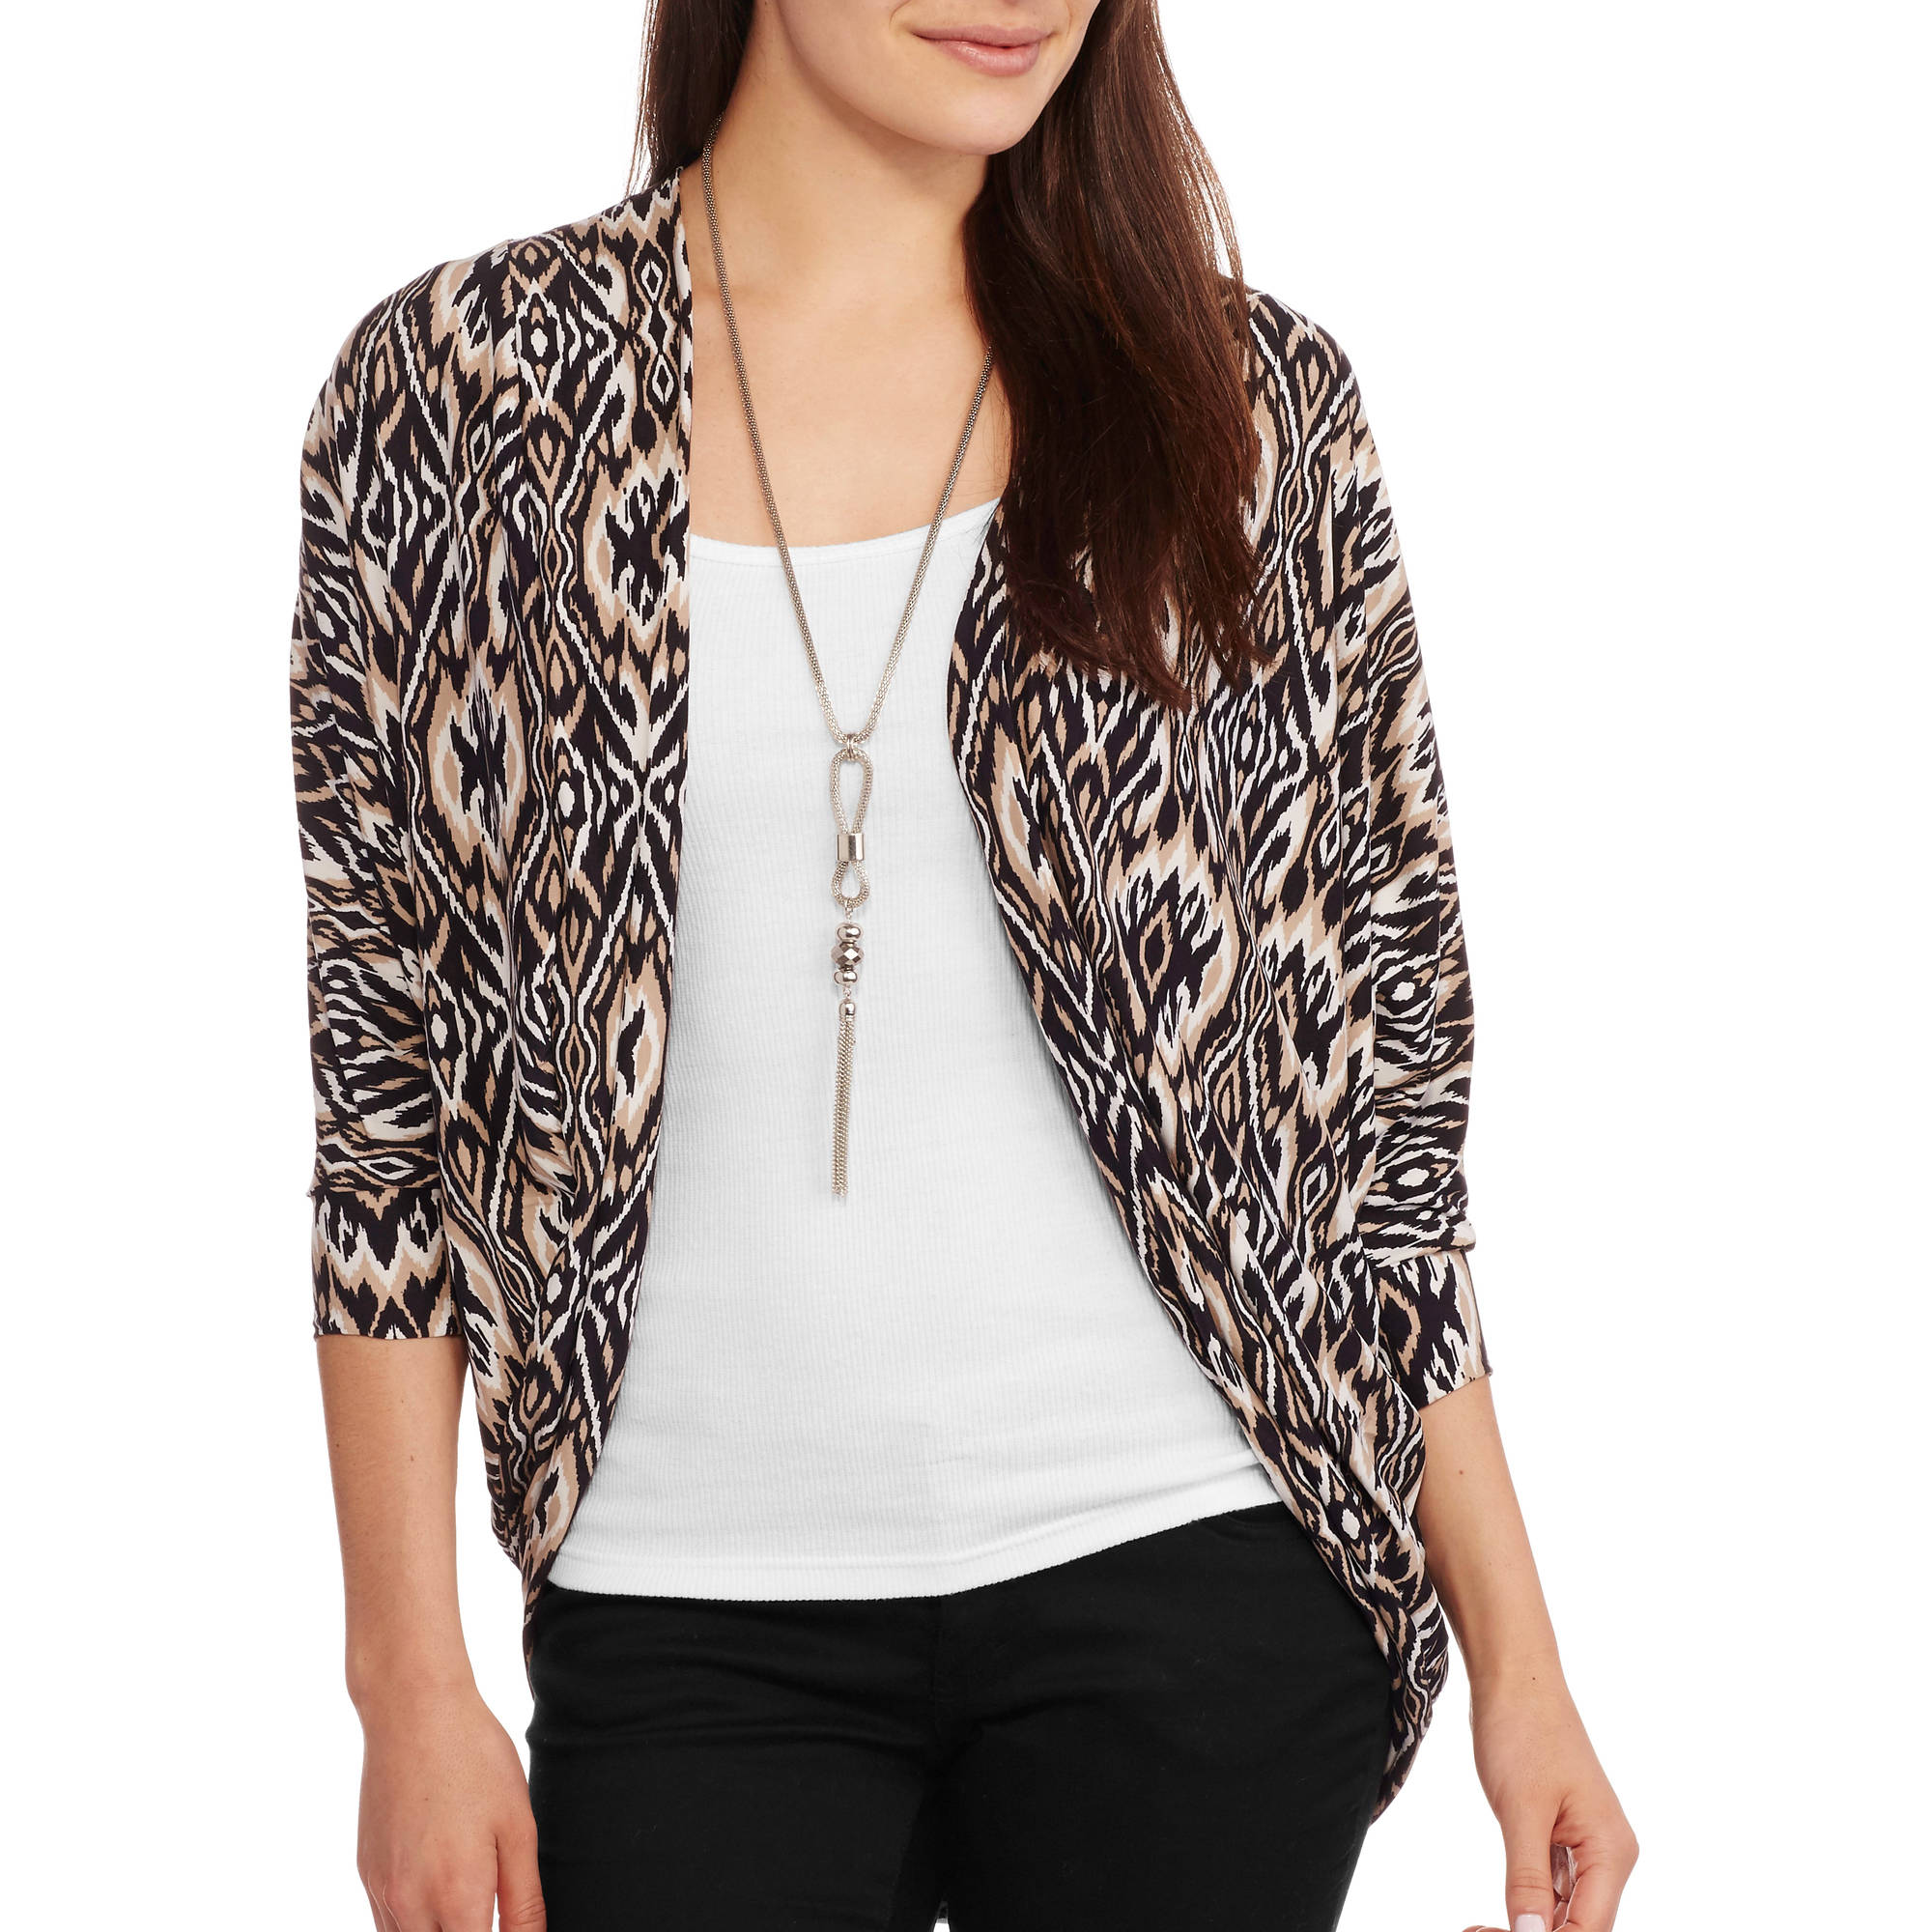 French Laundry Women's Super Soft Knit Kimono Wrap